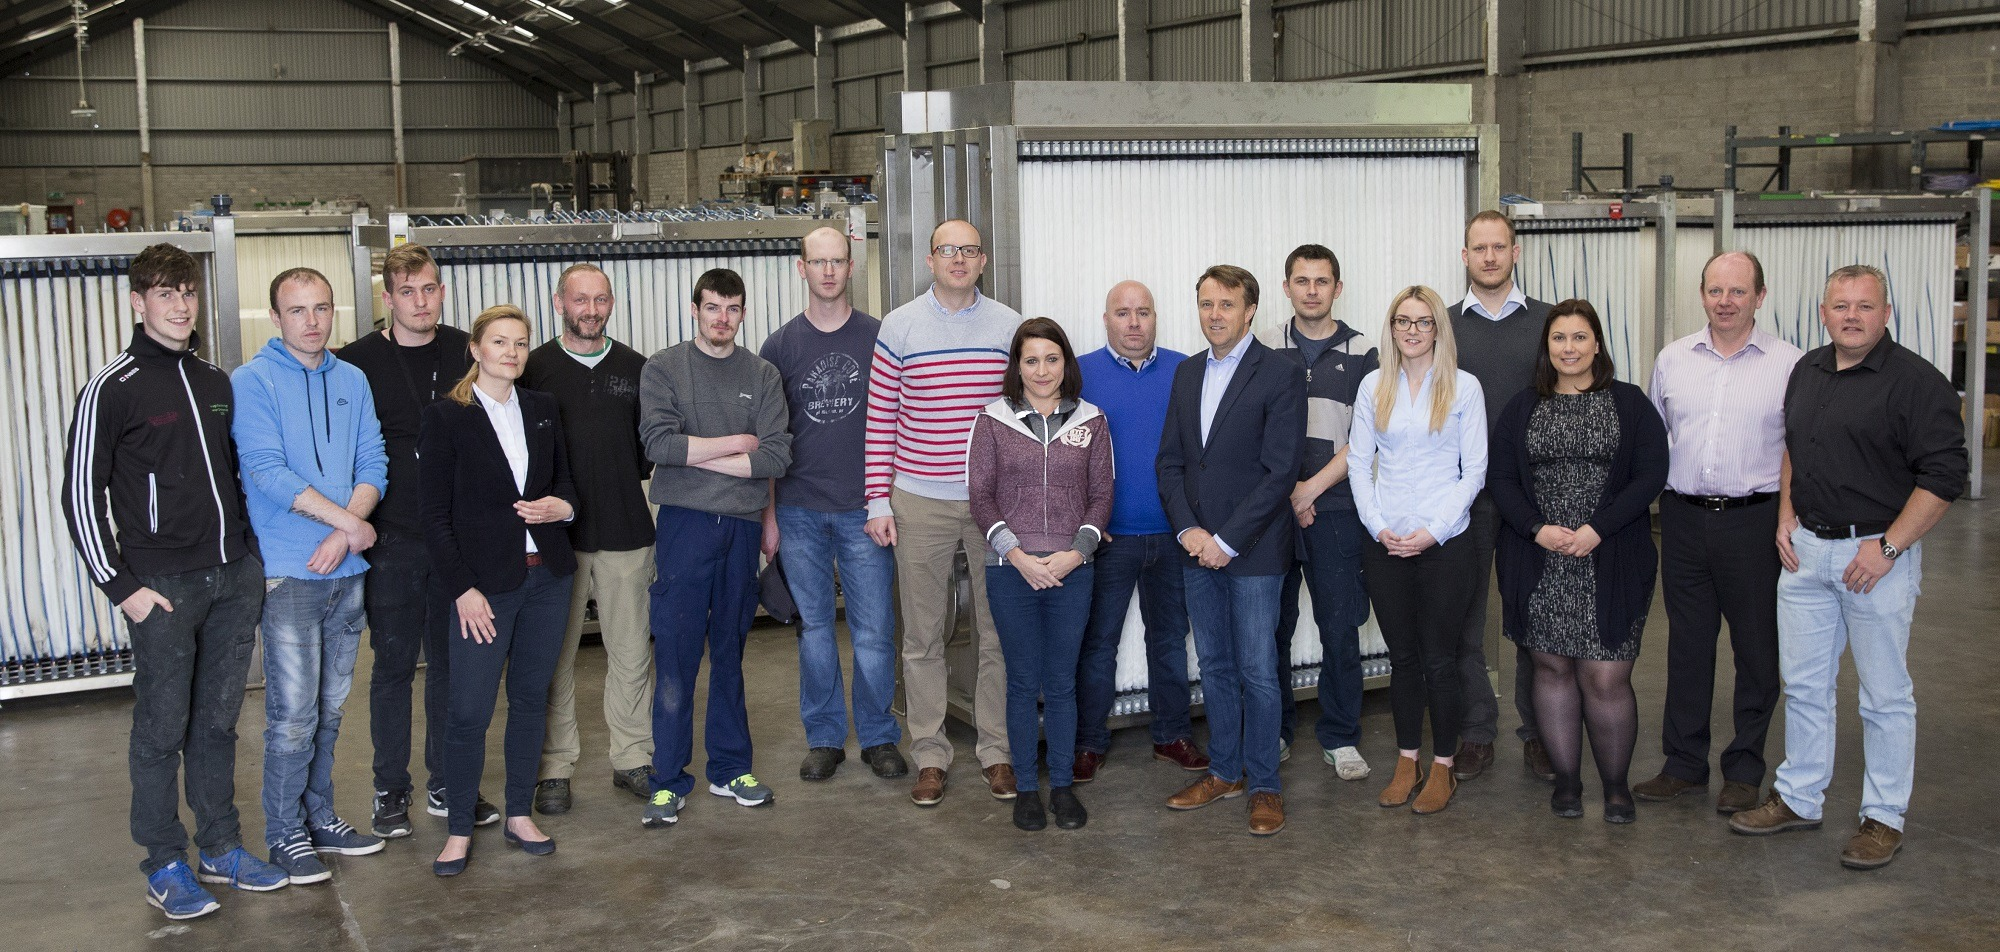 The OxyMem team at the company base in Athlone. Image: OxyMem